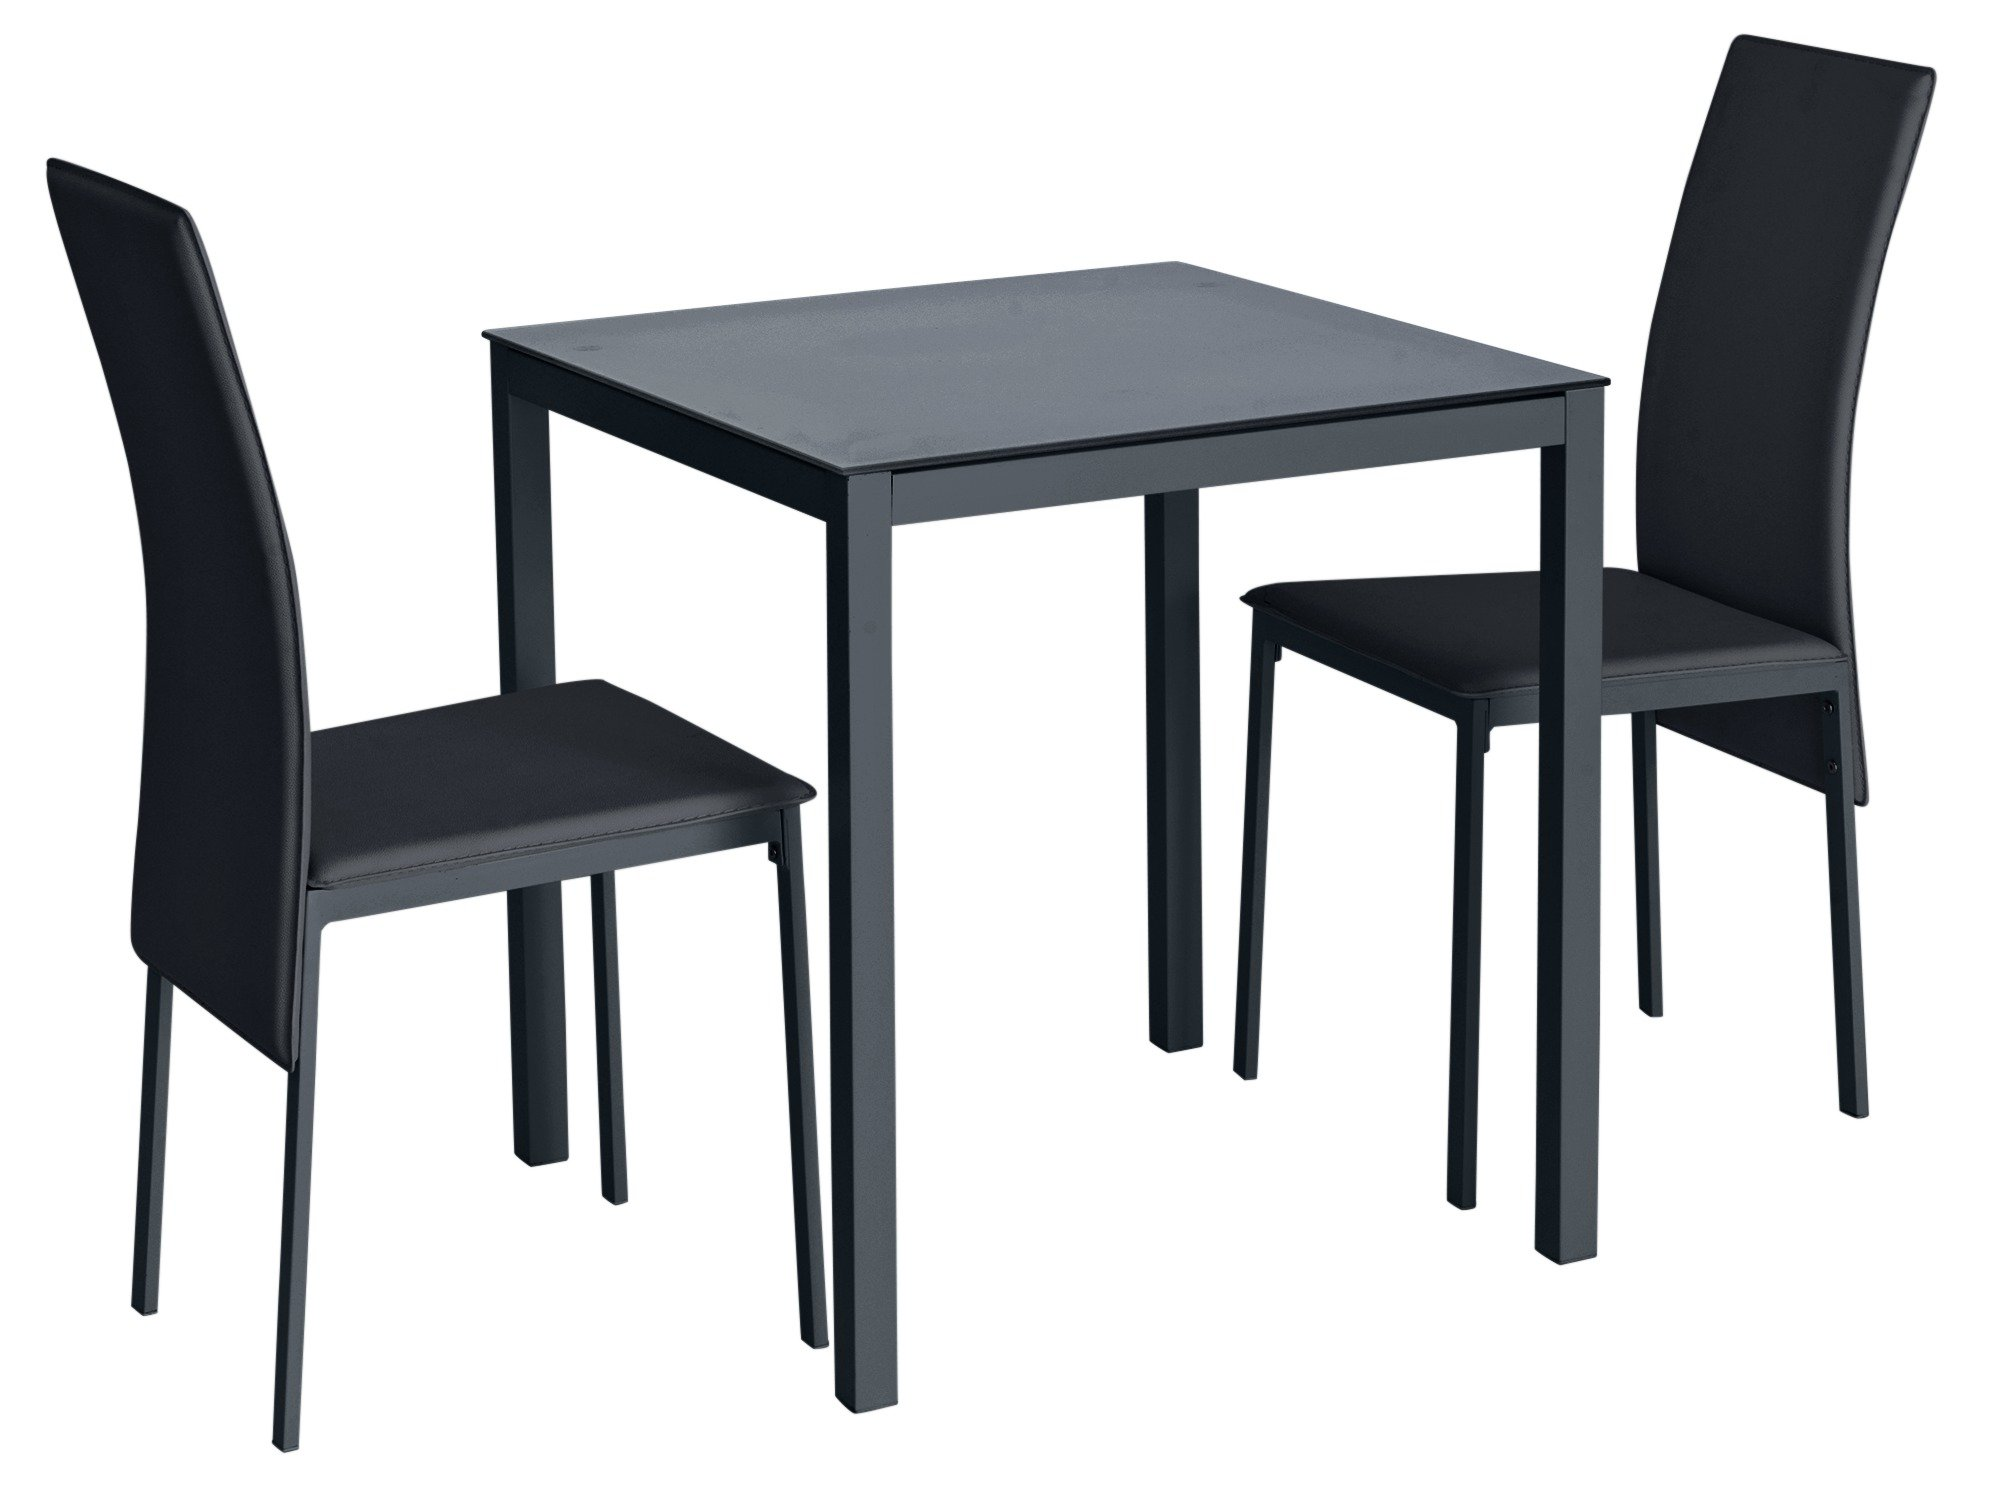 Buy Hygena Lido Glass Dining Table 2 Chairs Black Space Saving